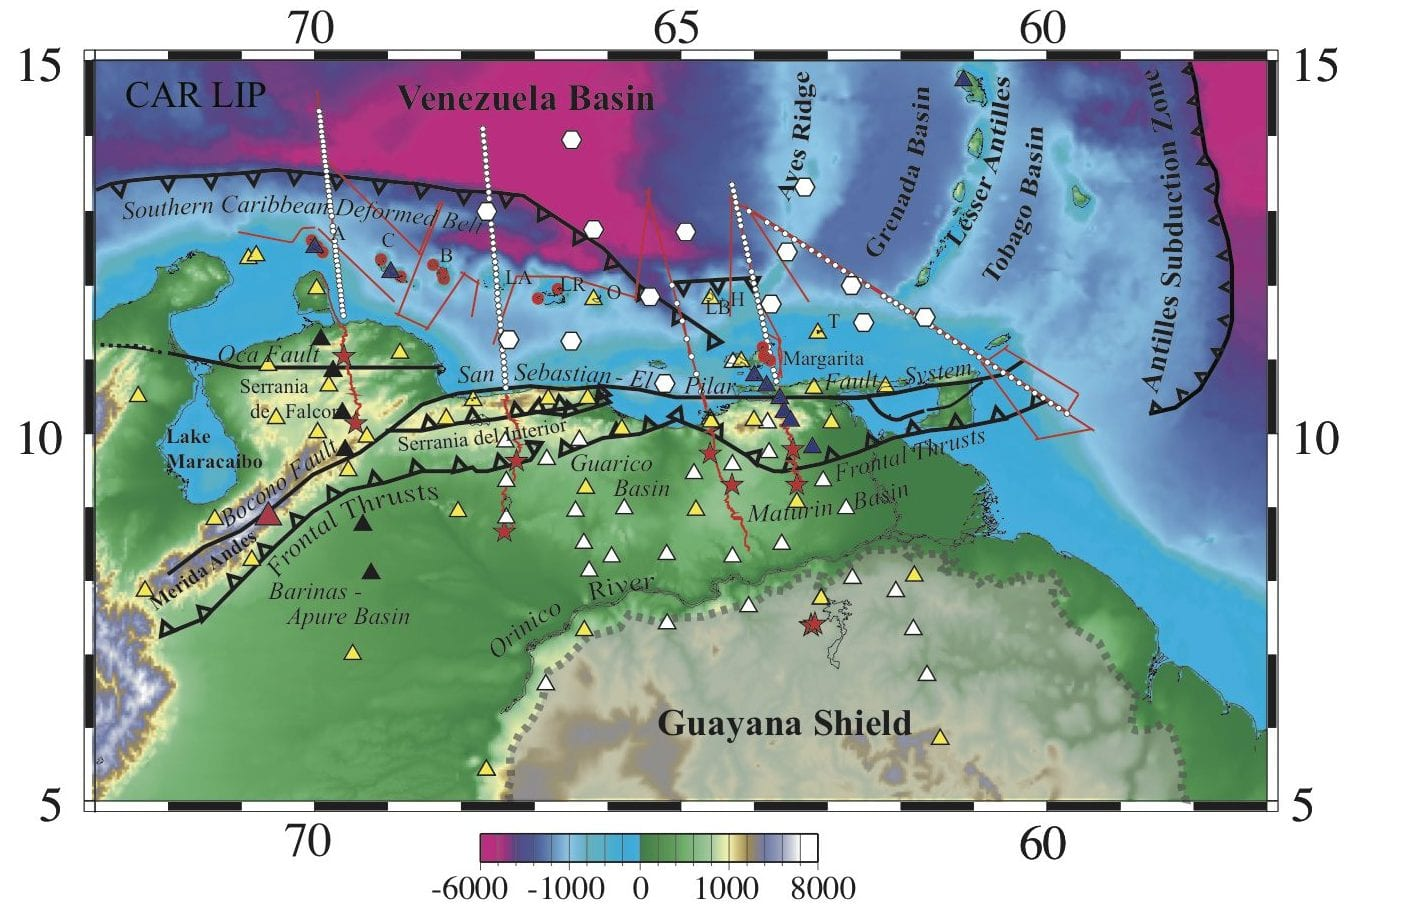 BOLIVAR Experiment: Active source OBS (white circles), marine reflection (red), and onshore-offshore profiles (red) and land shots (red stars). BOLIVAR Broadband Instruments: Land (yellow and white triangles) and OBS (white hexagons).